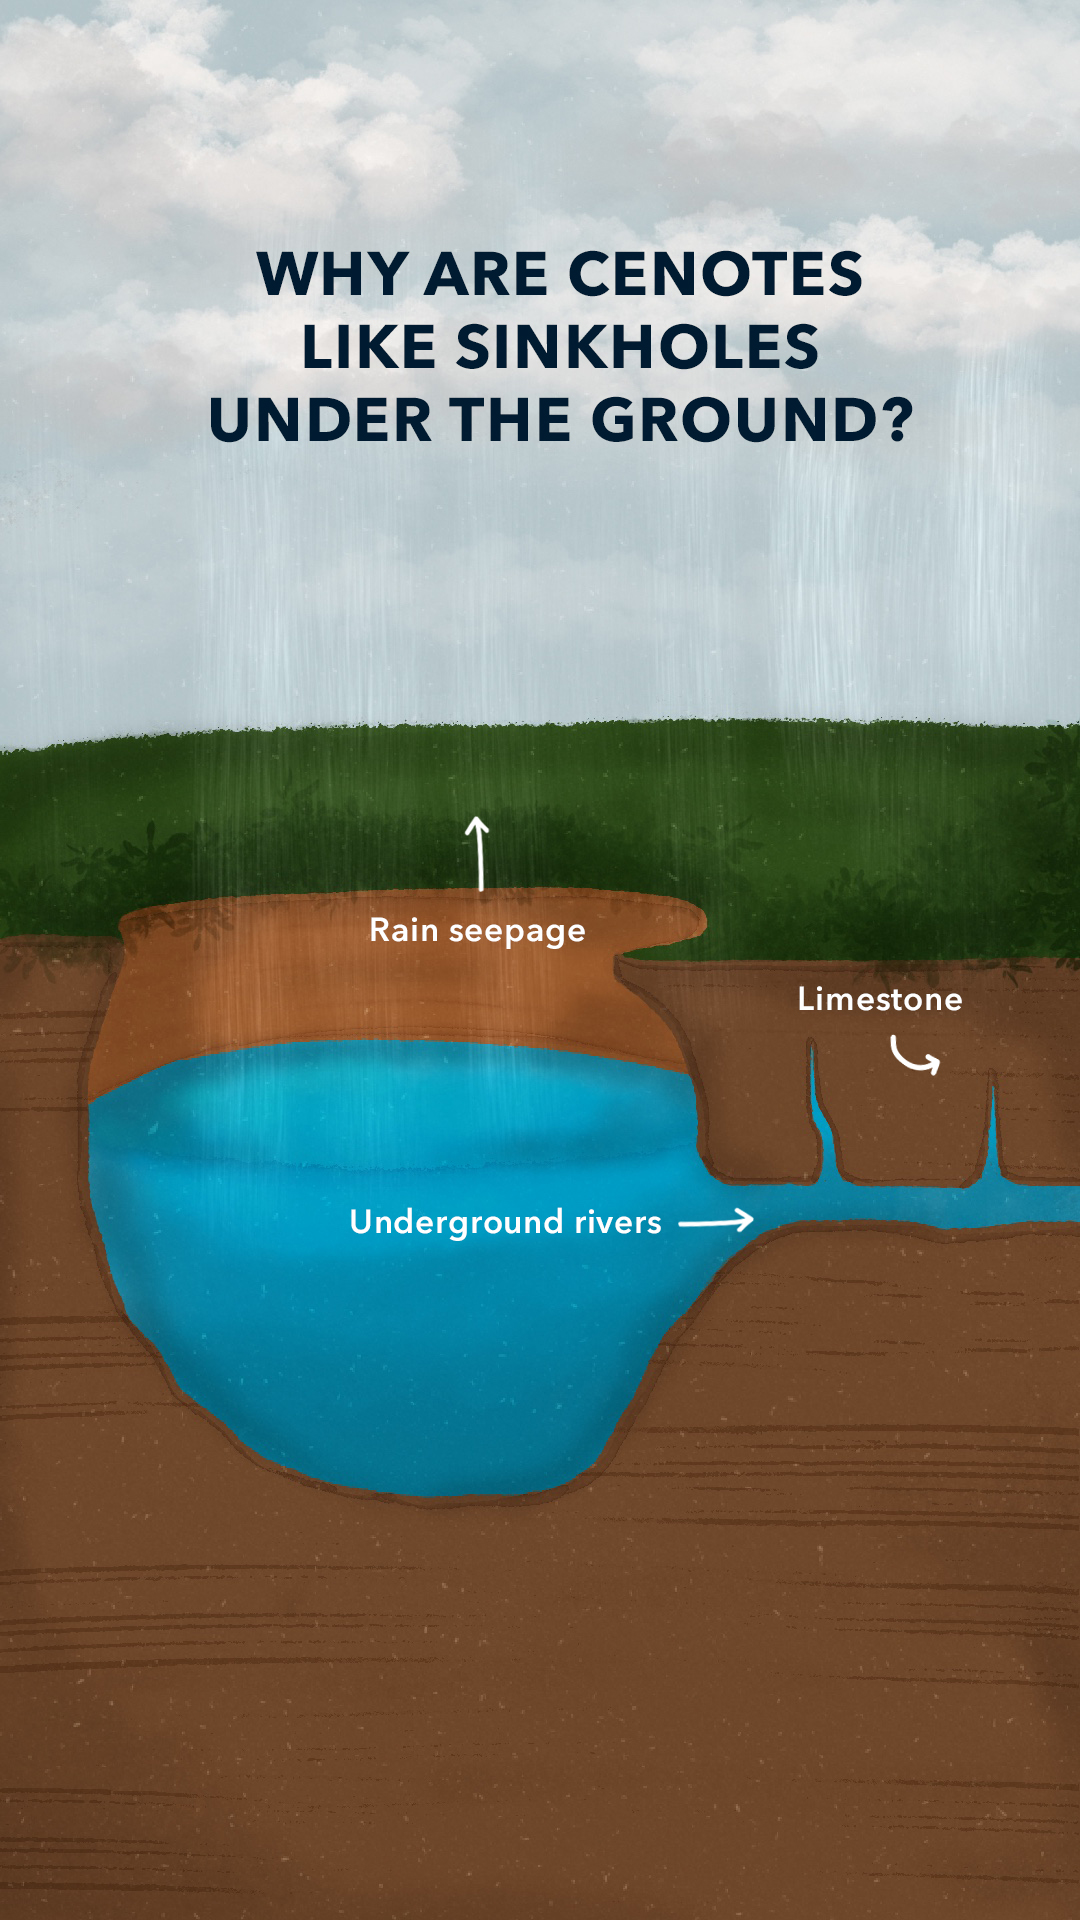 Why are cenotes like an under the ground sinkhole?